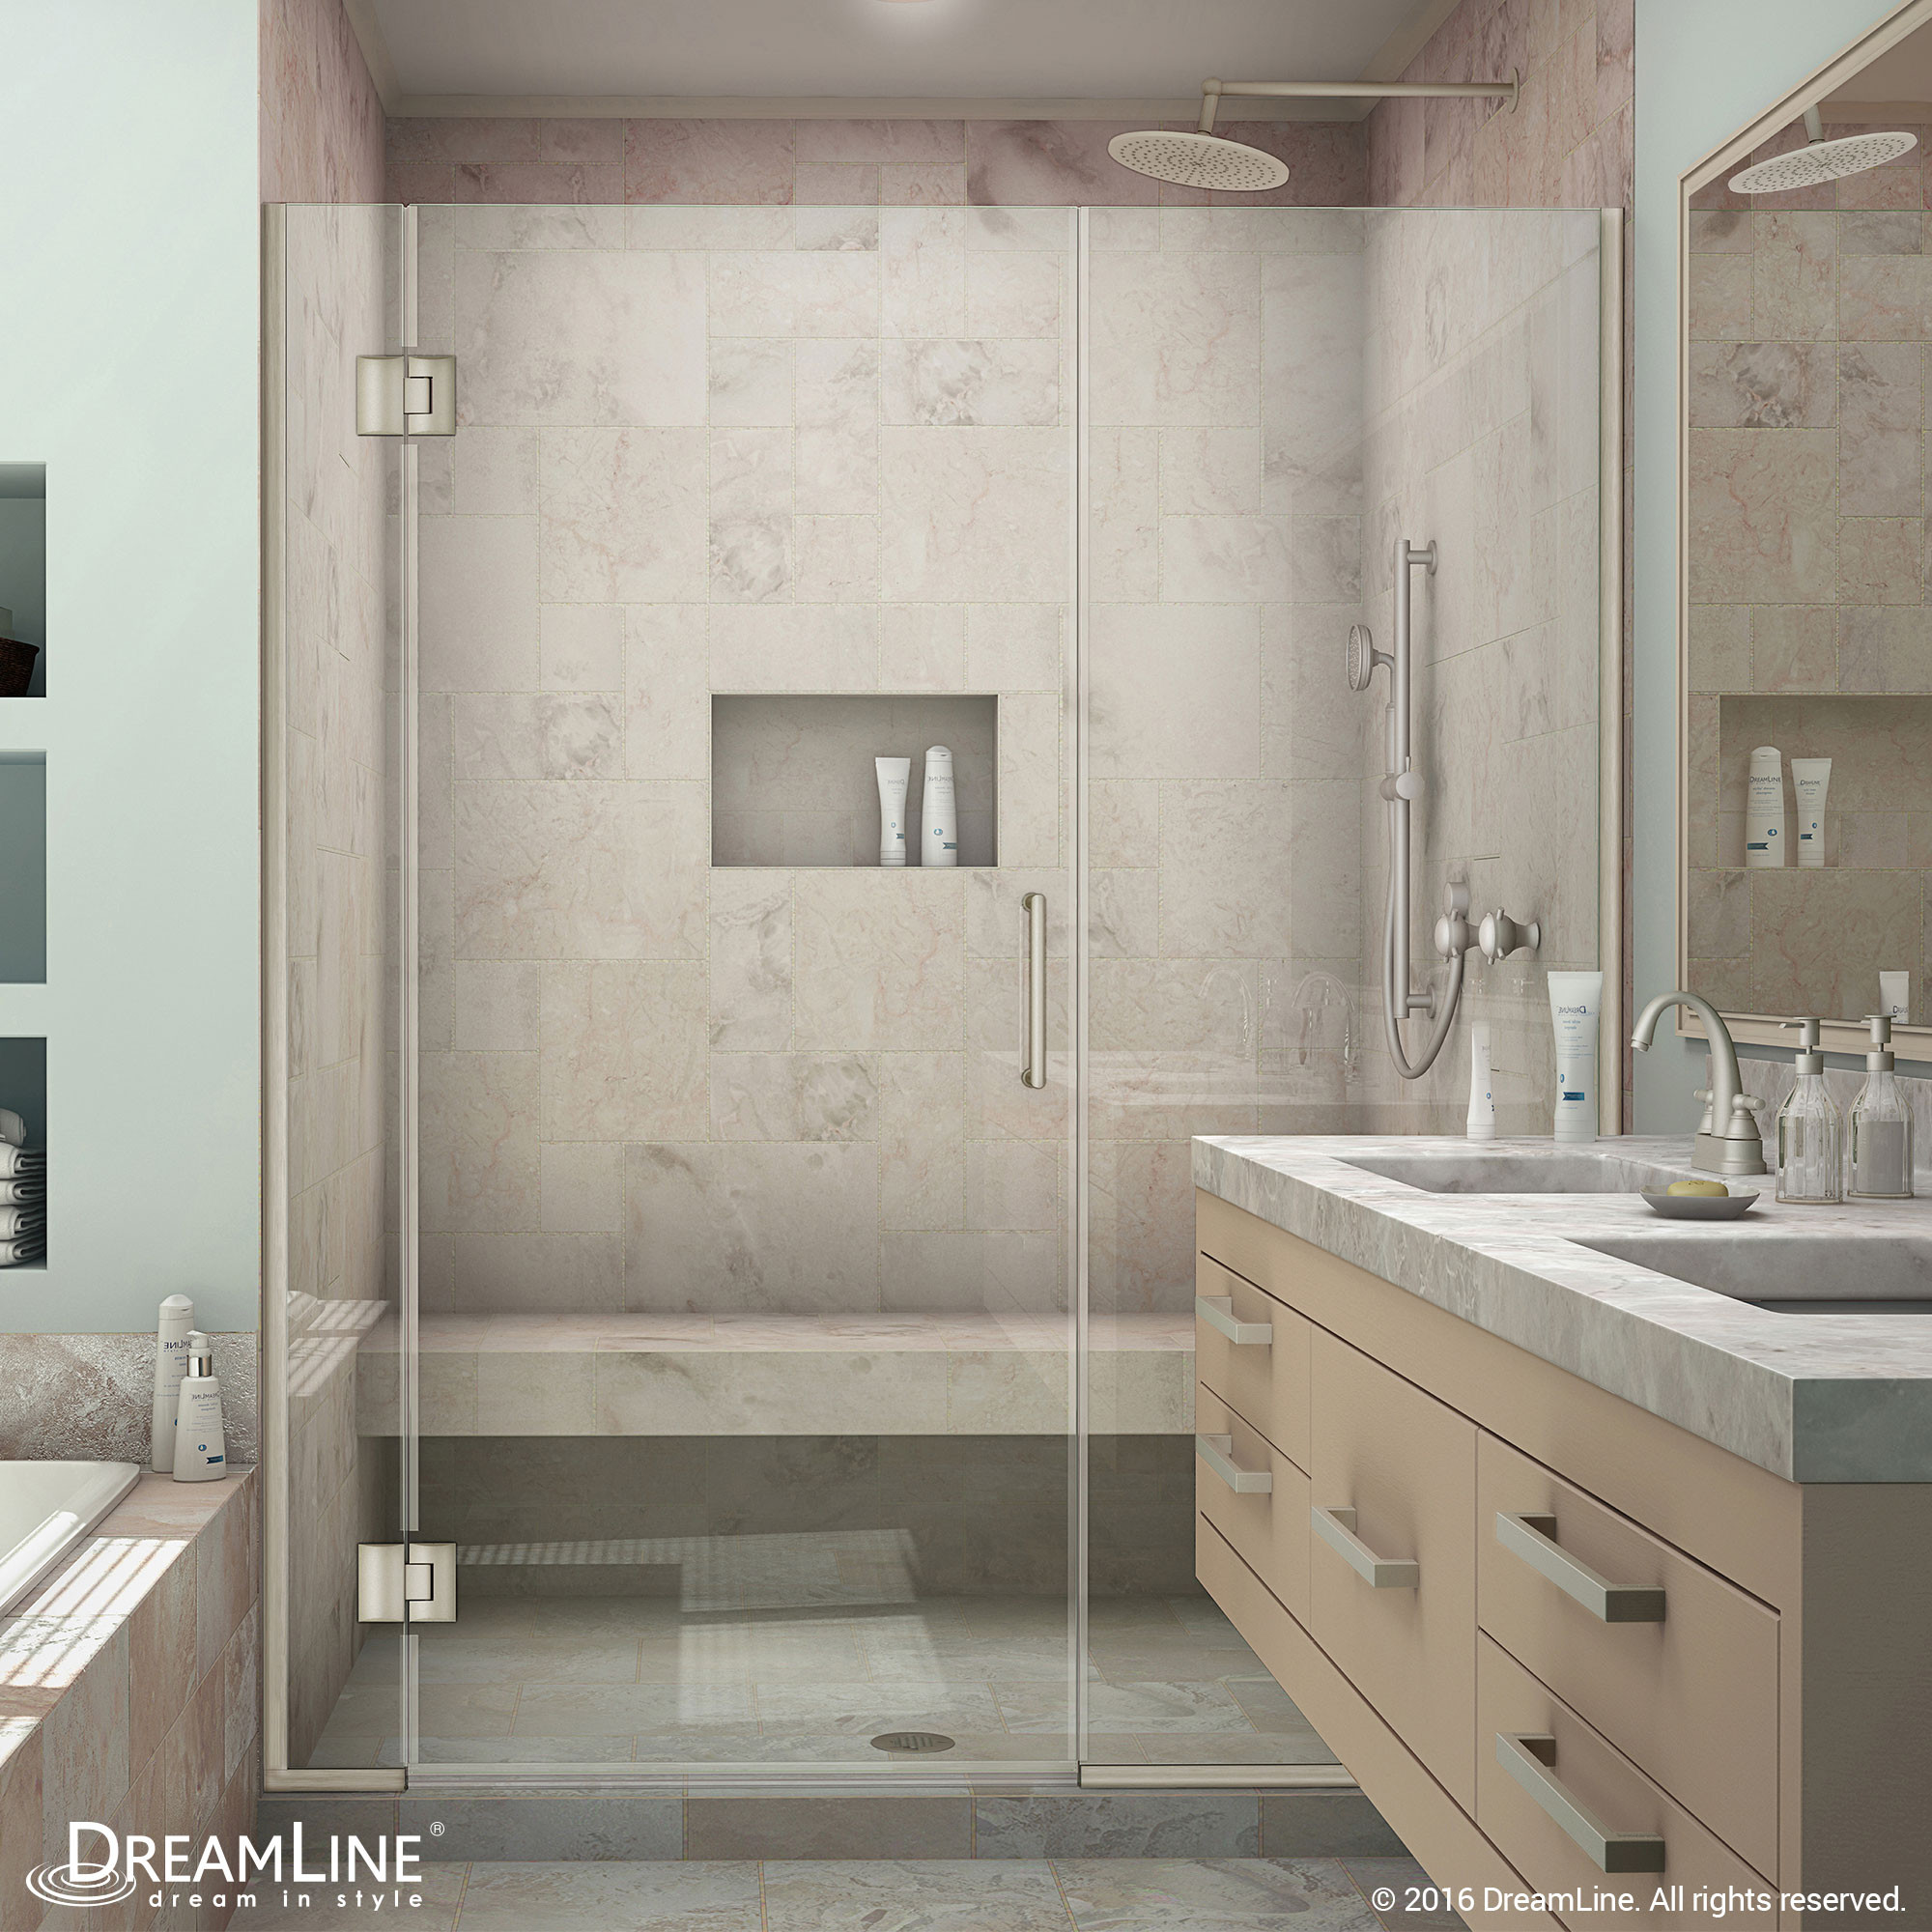 DreamLine D1253072-04 Unidoor-X 61 - 61 1/2 in. W x 72 in. H Hinged Shower Door in Brushed Nickel